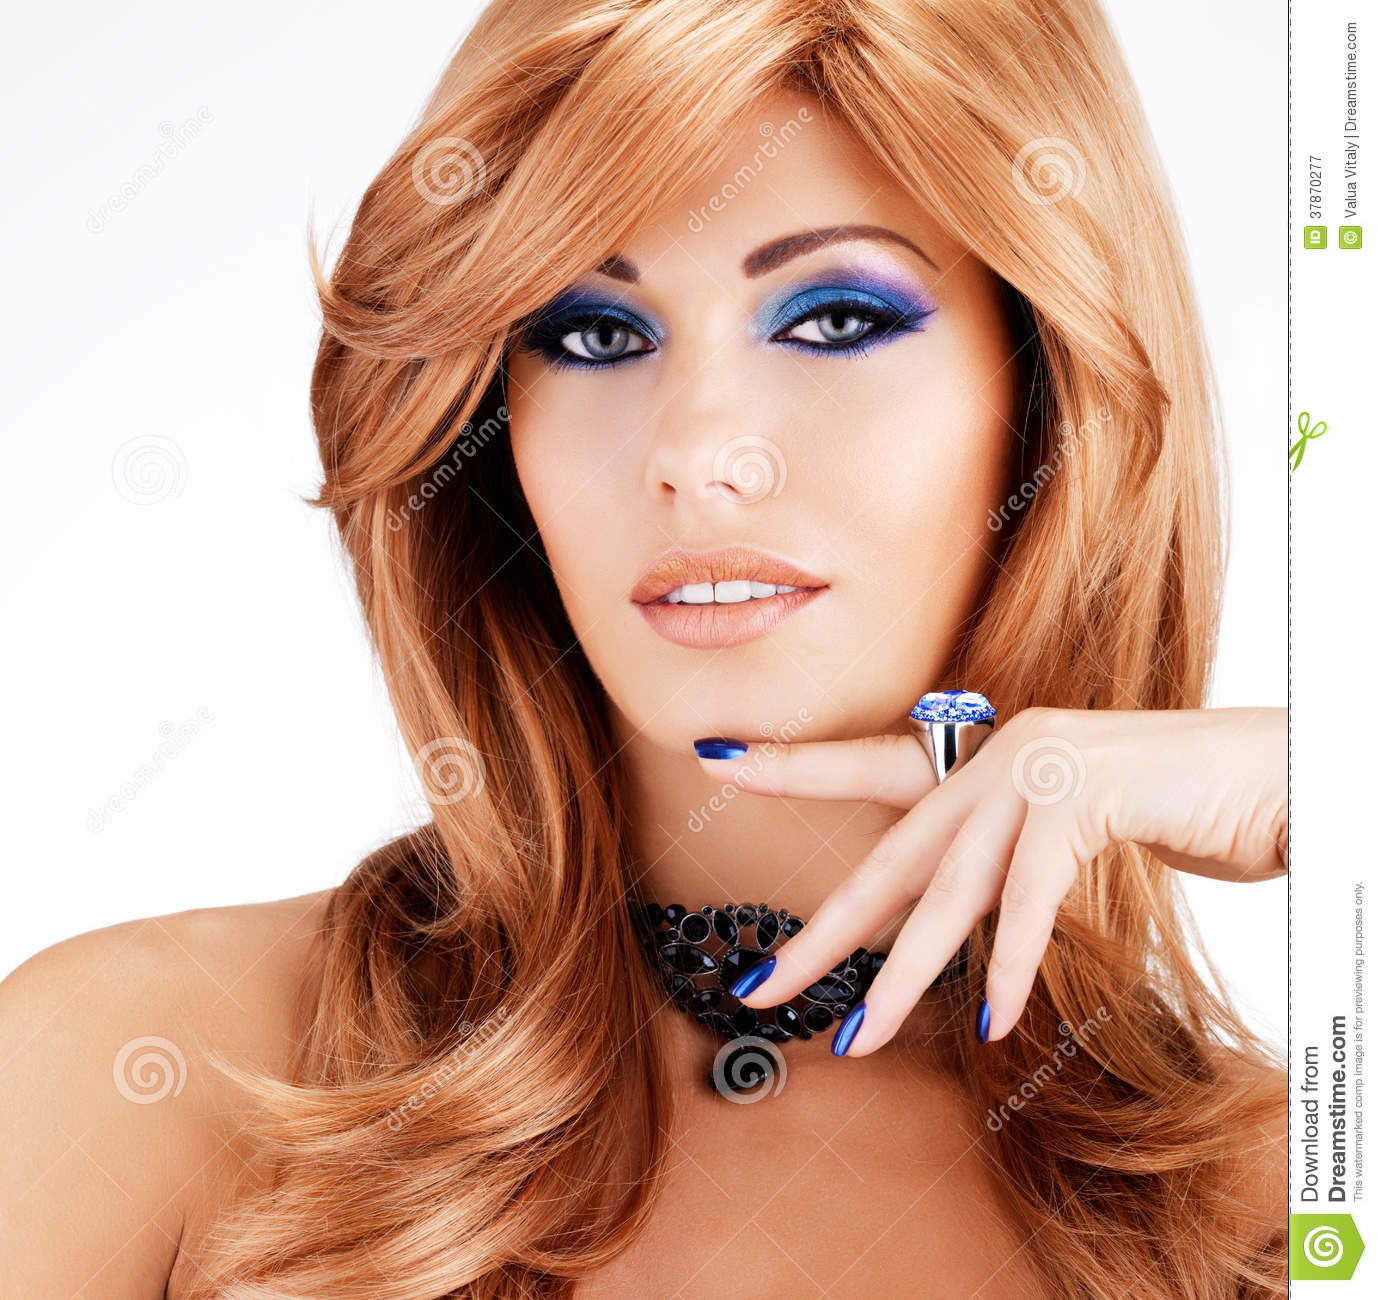 Portrait Of A Beautiful Woman With Blue Nails Blue Makeup Stock Image - Image 37870277